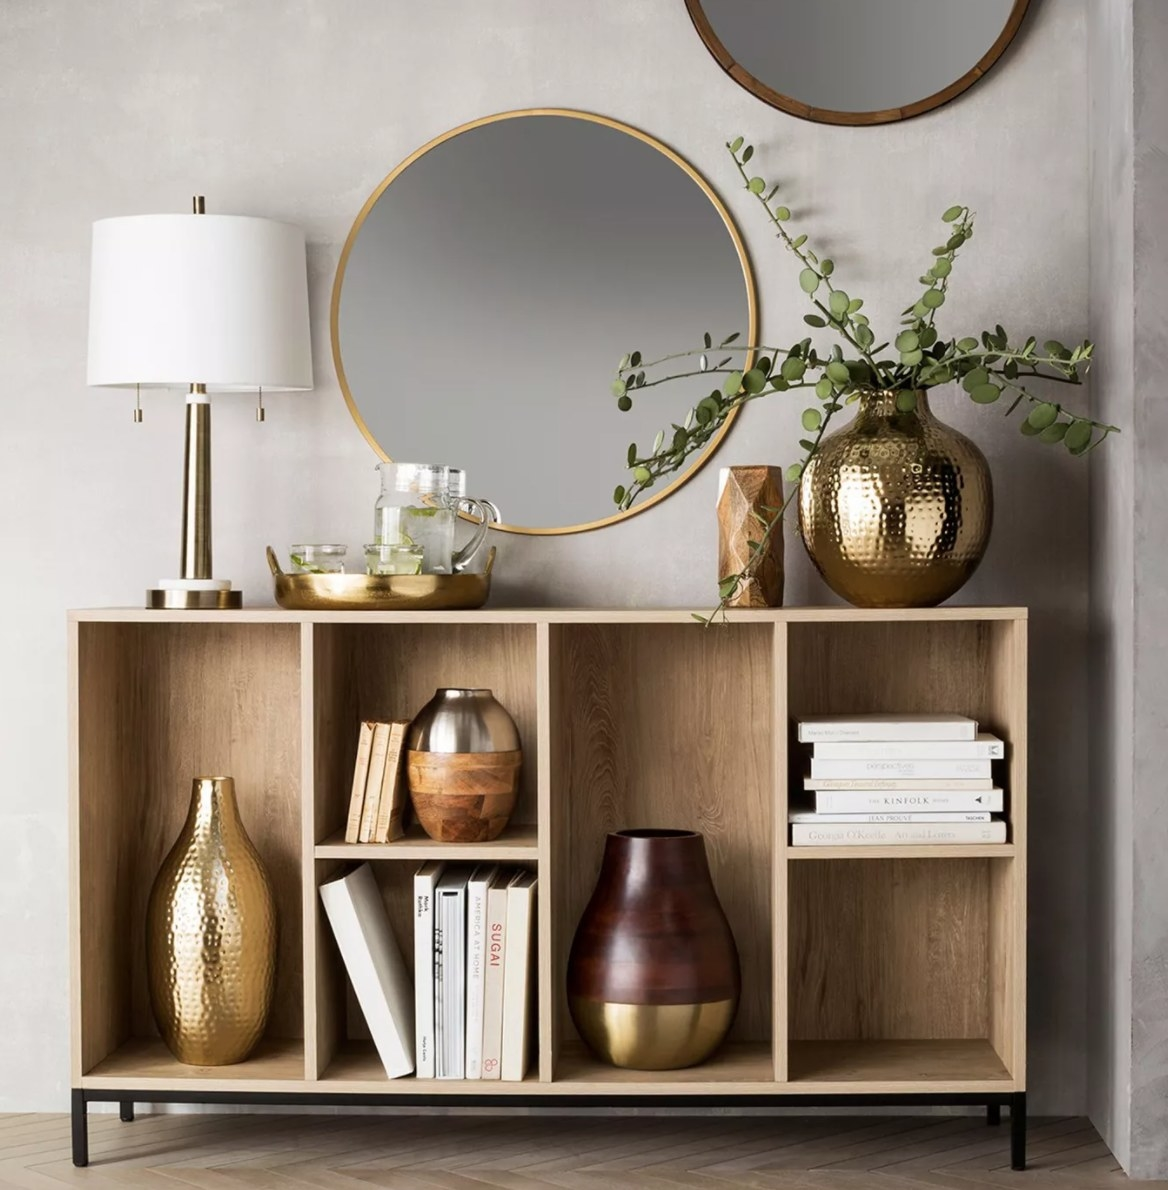 A round wall mirror with thin gold frame